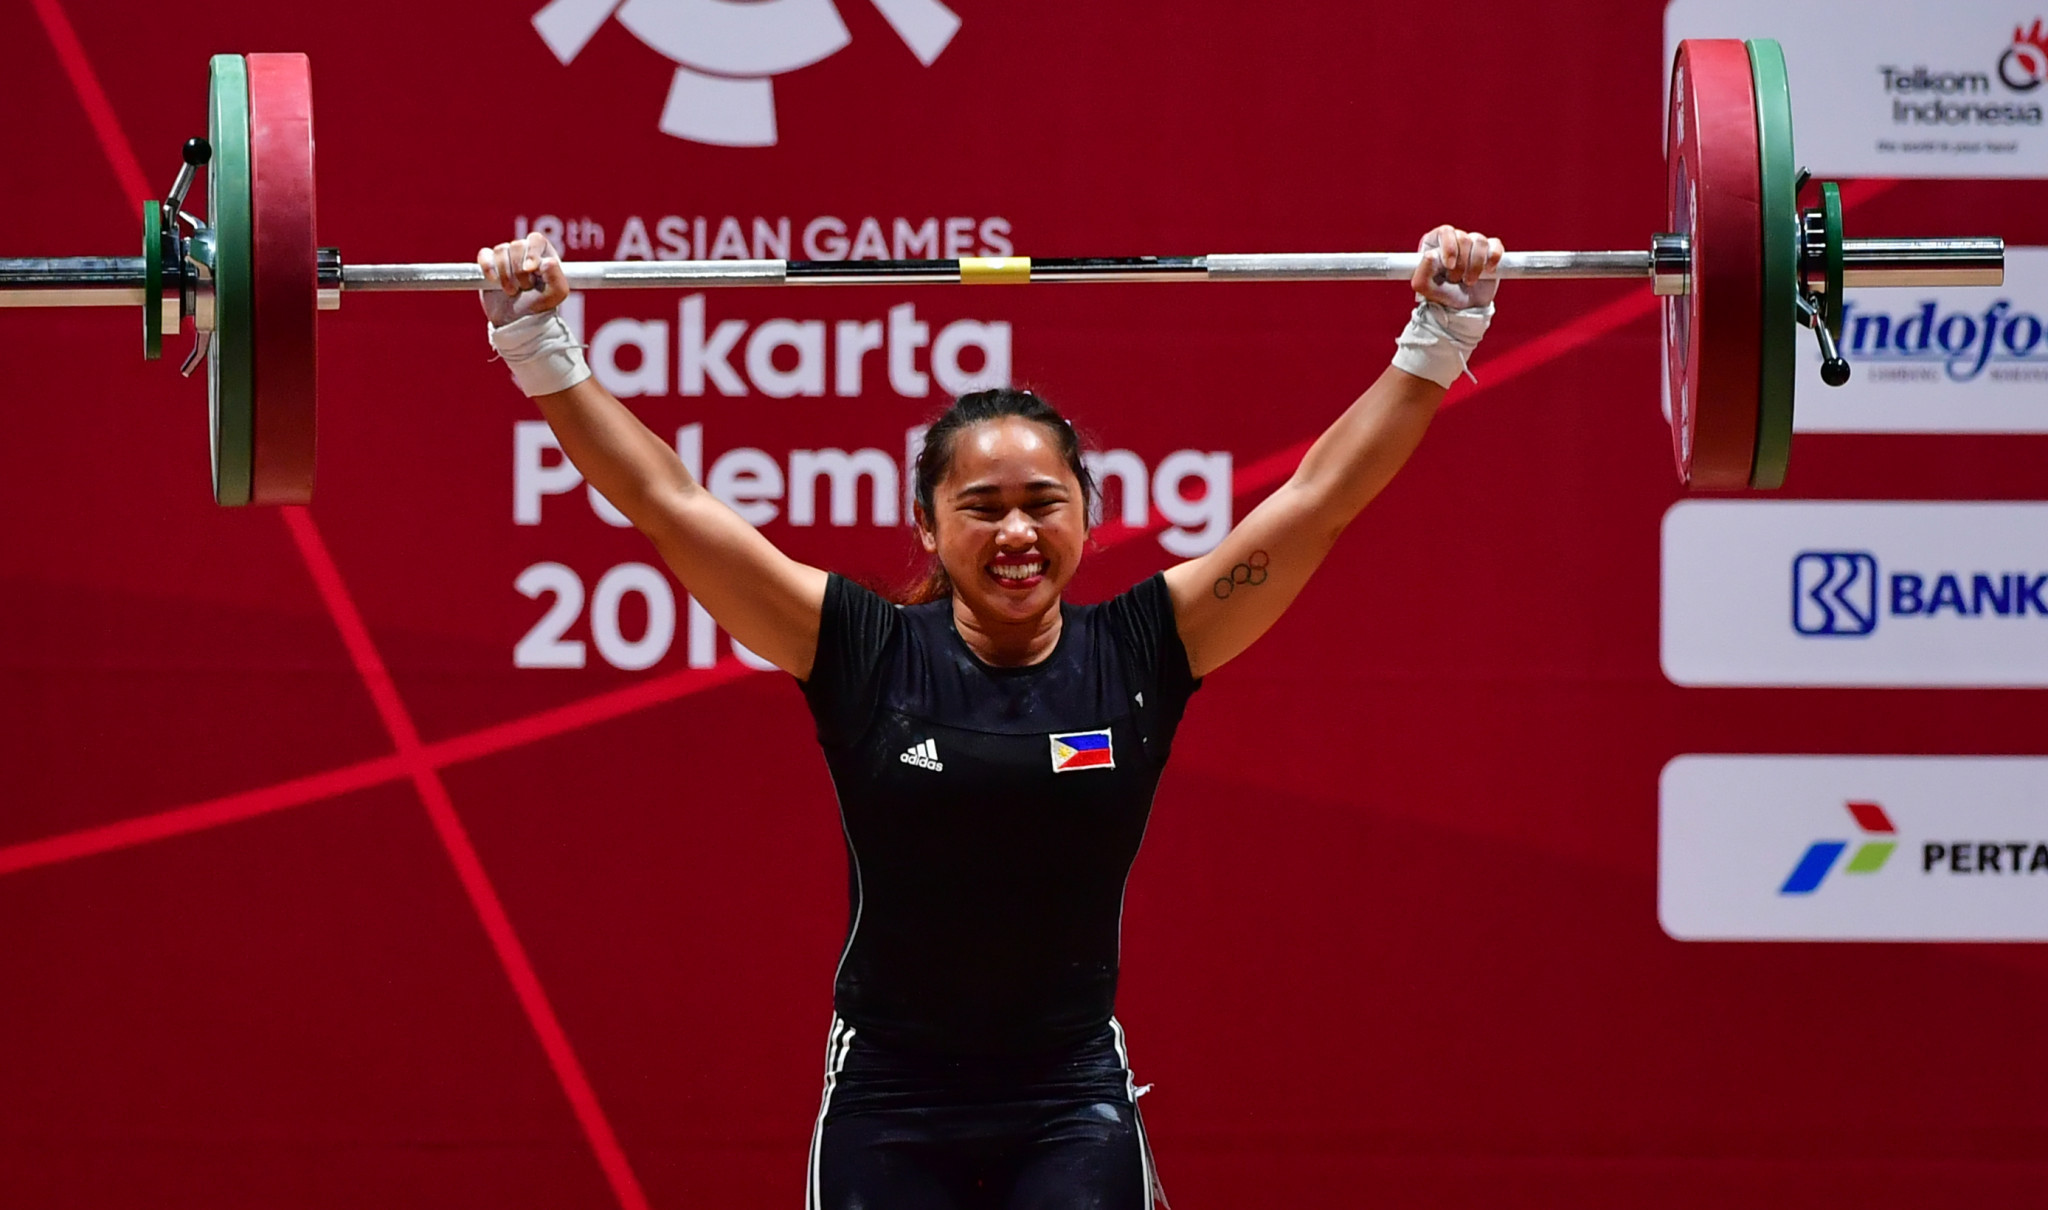 Hidilyn Diaz will represent the Philippines at the 2018 IWF World Championships, but two of her compatriots have missed out on the chance ©Getty Images